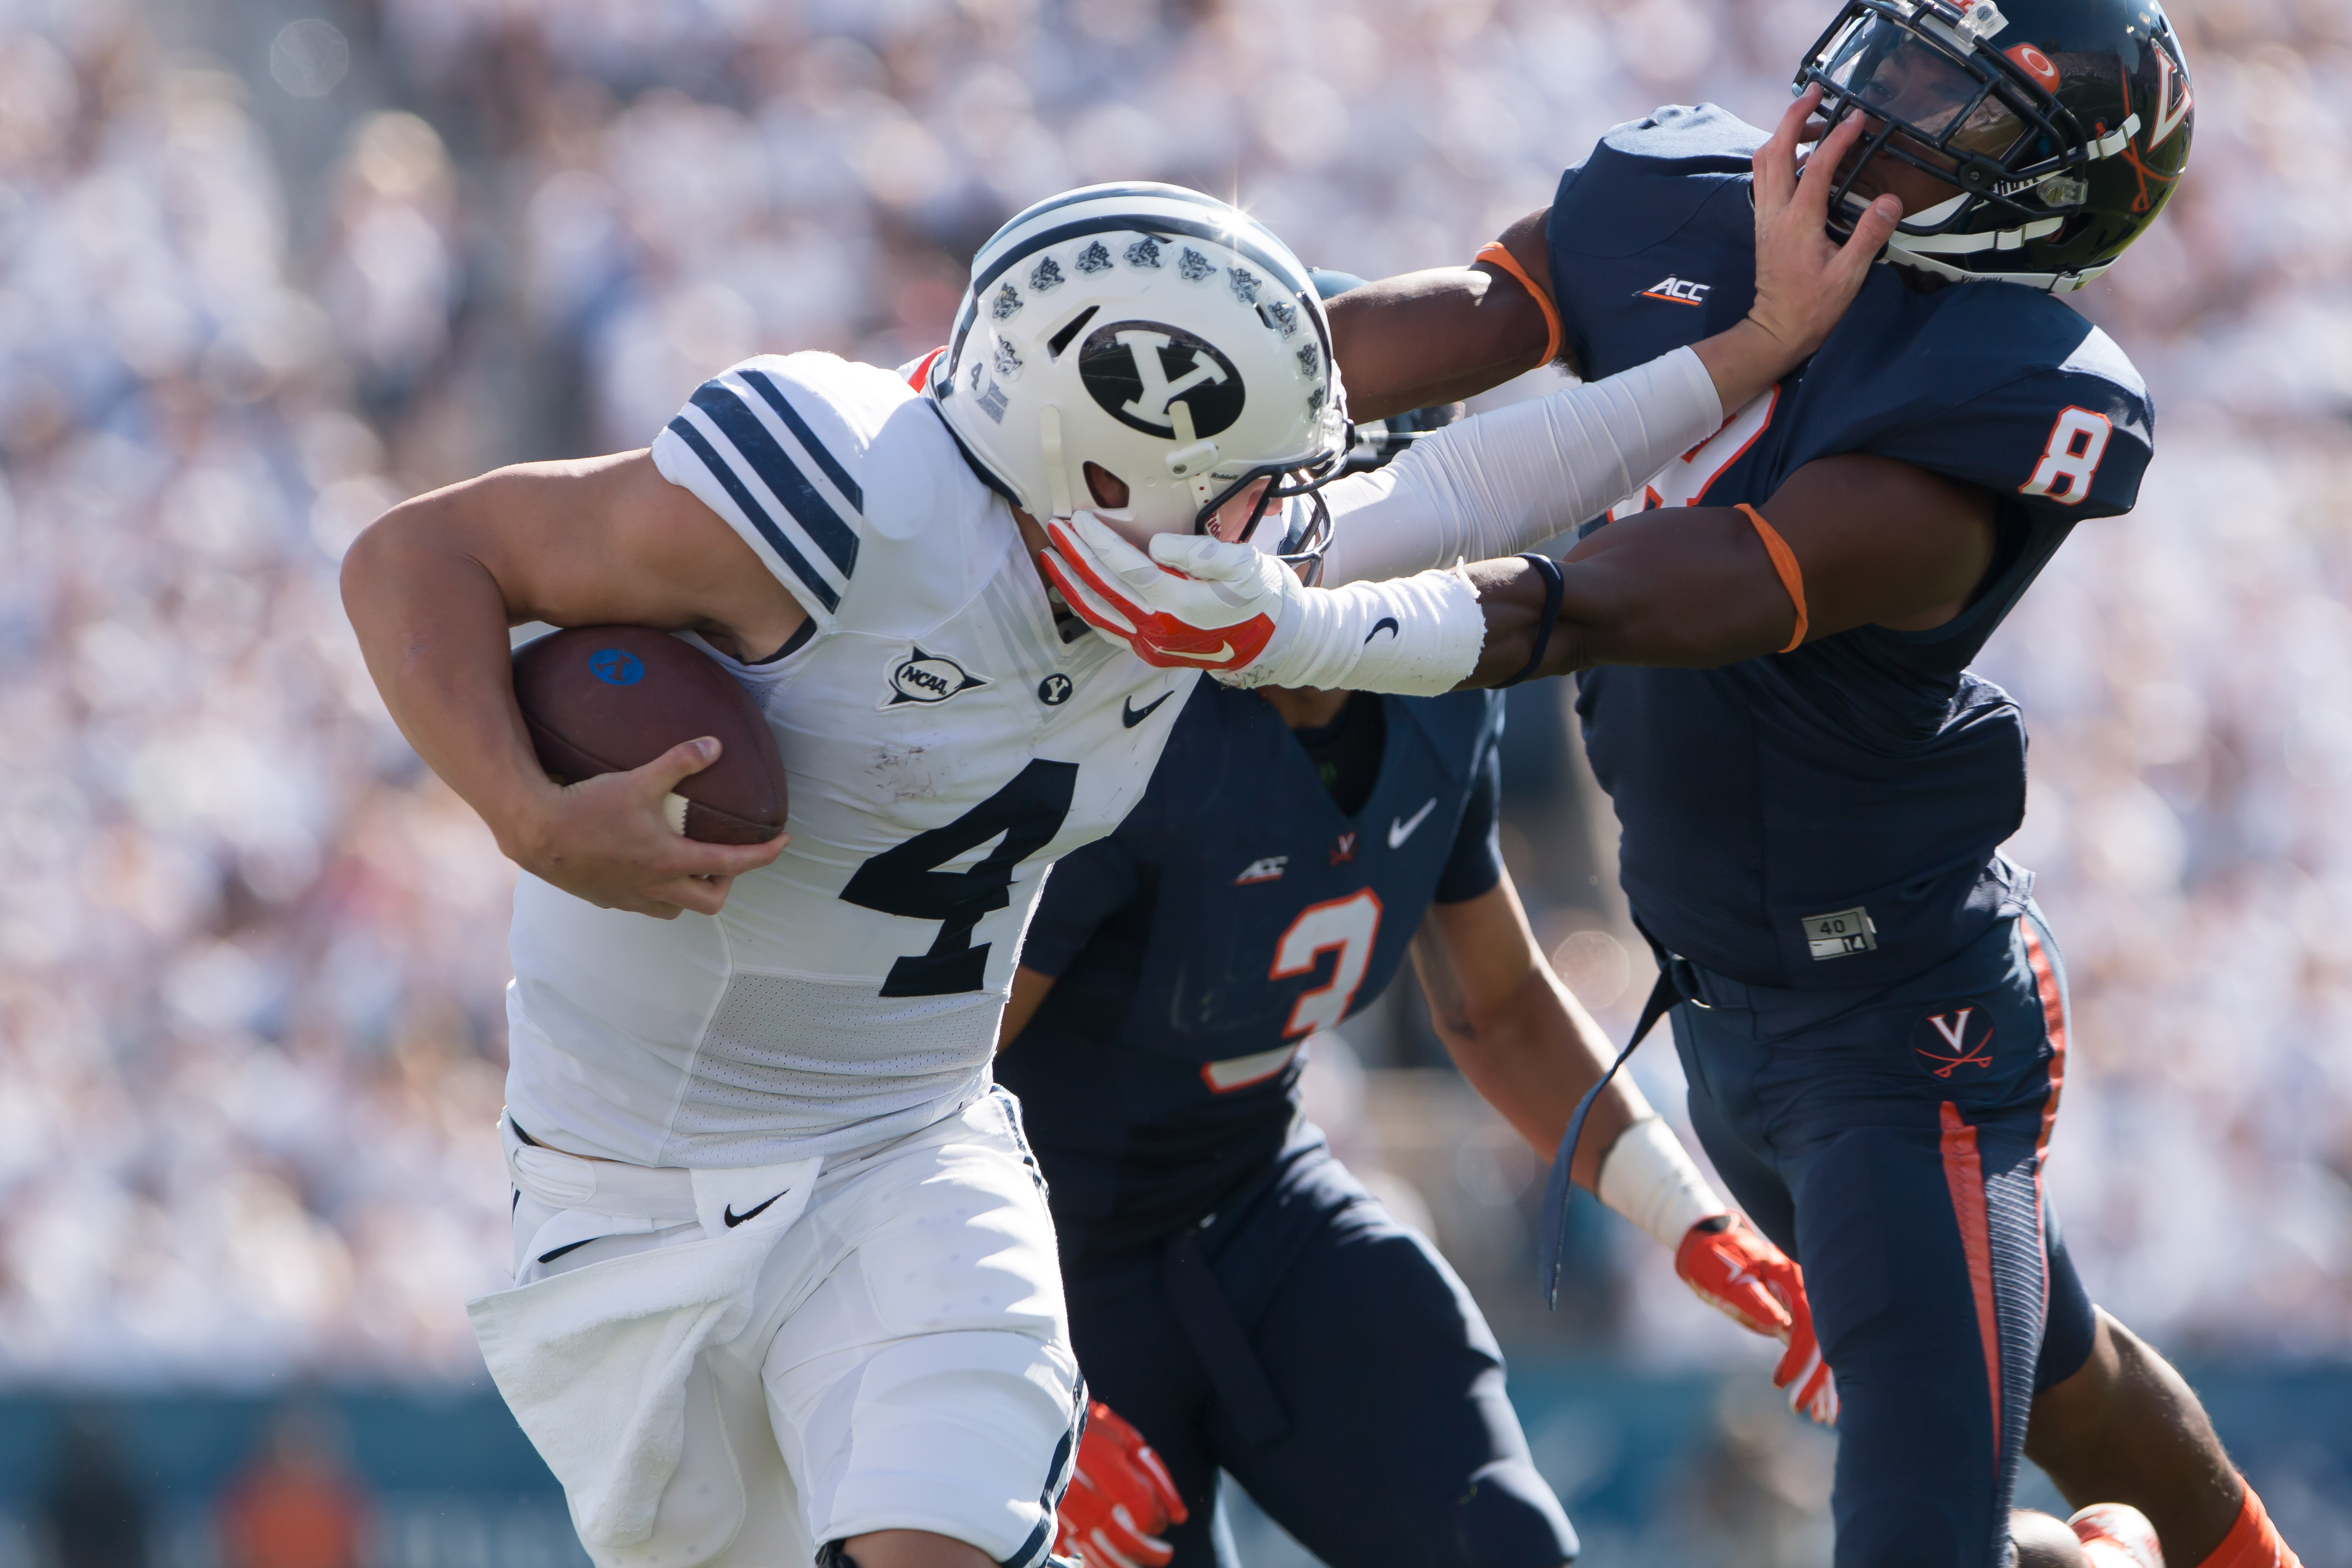 Taysom Hill runs with the ball, fighting through Virginia opposition to score a touchdown. (Maddi Dayton)